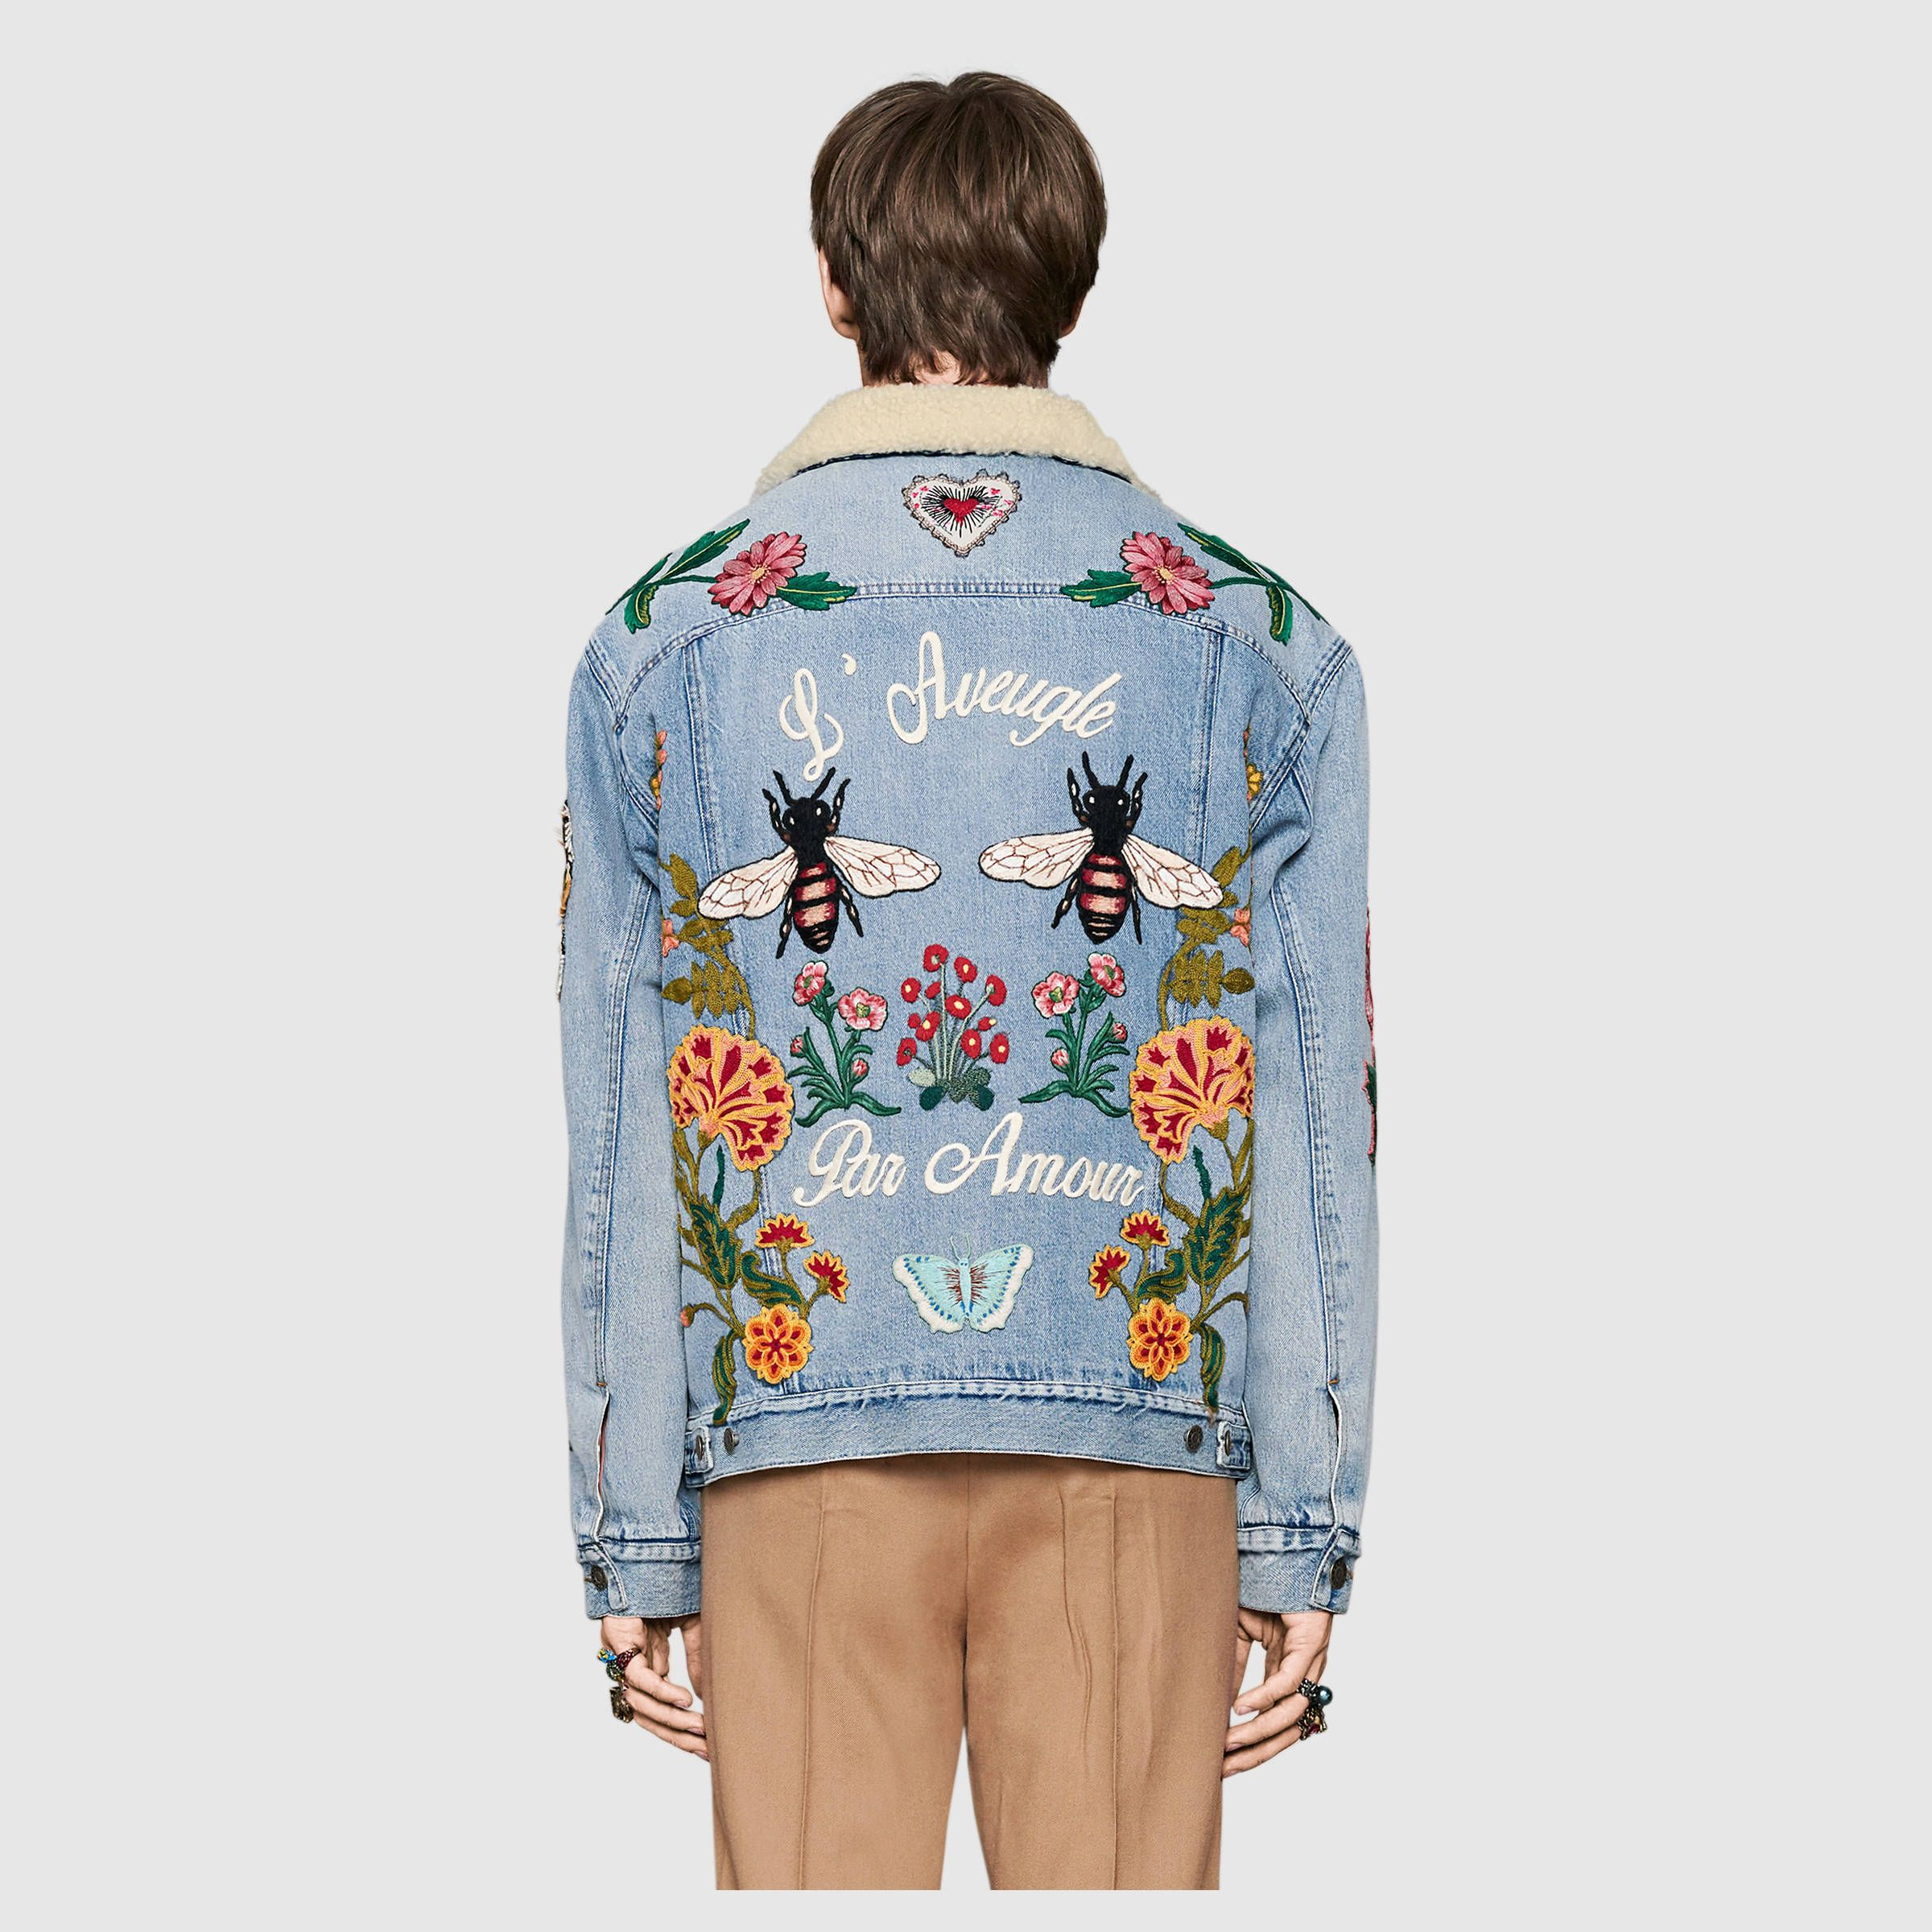 7f3f38166b19 Shop the Embroidered denim jacket with shearling by Gucci. Inspired by a patched  denim jacket